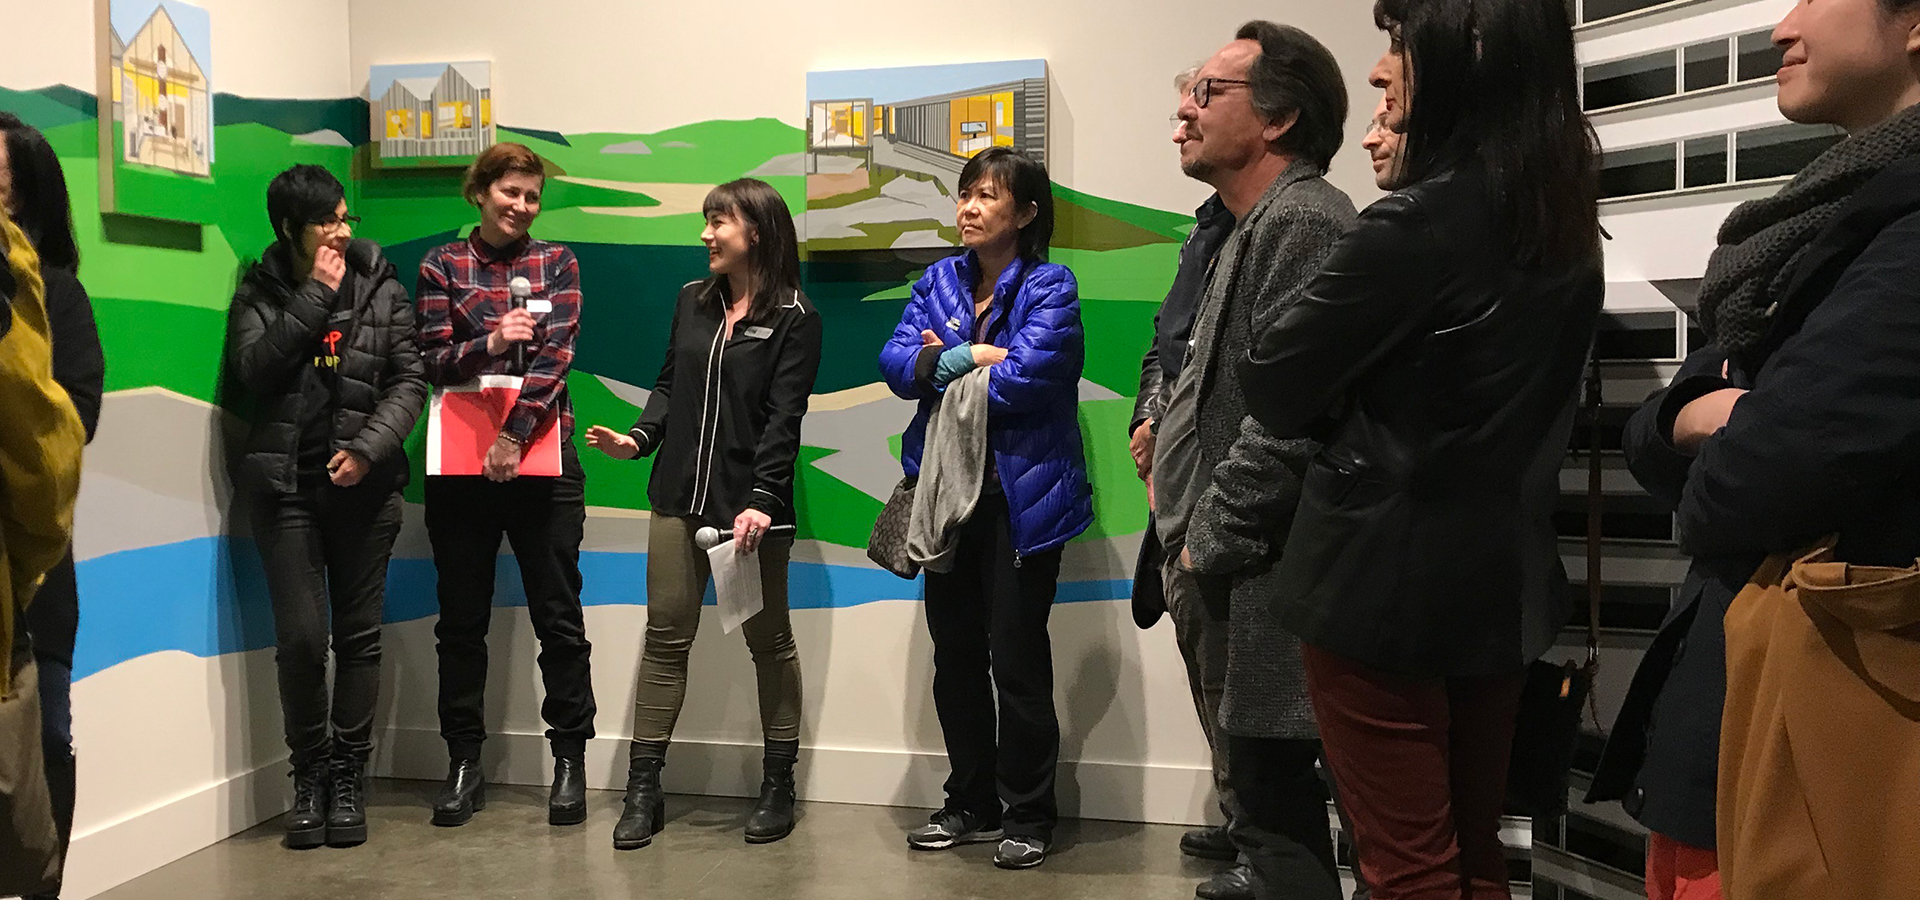 Group of people standing and listening to artist talk